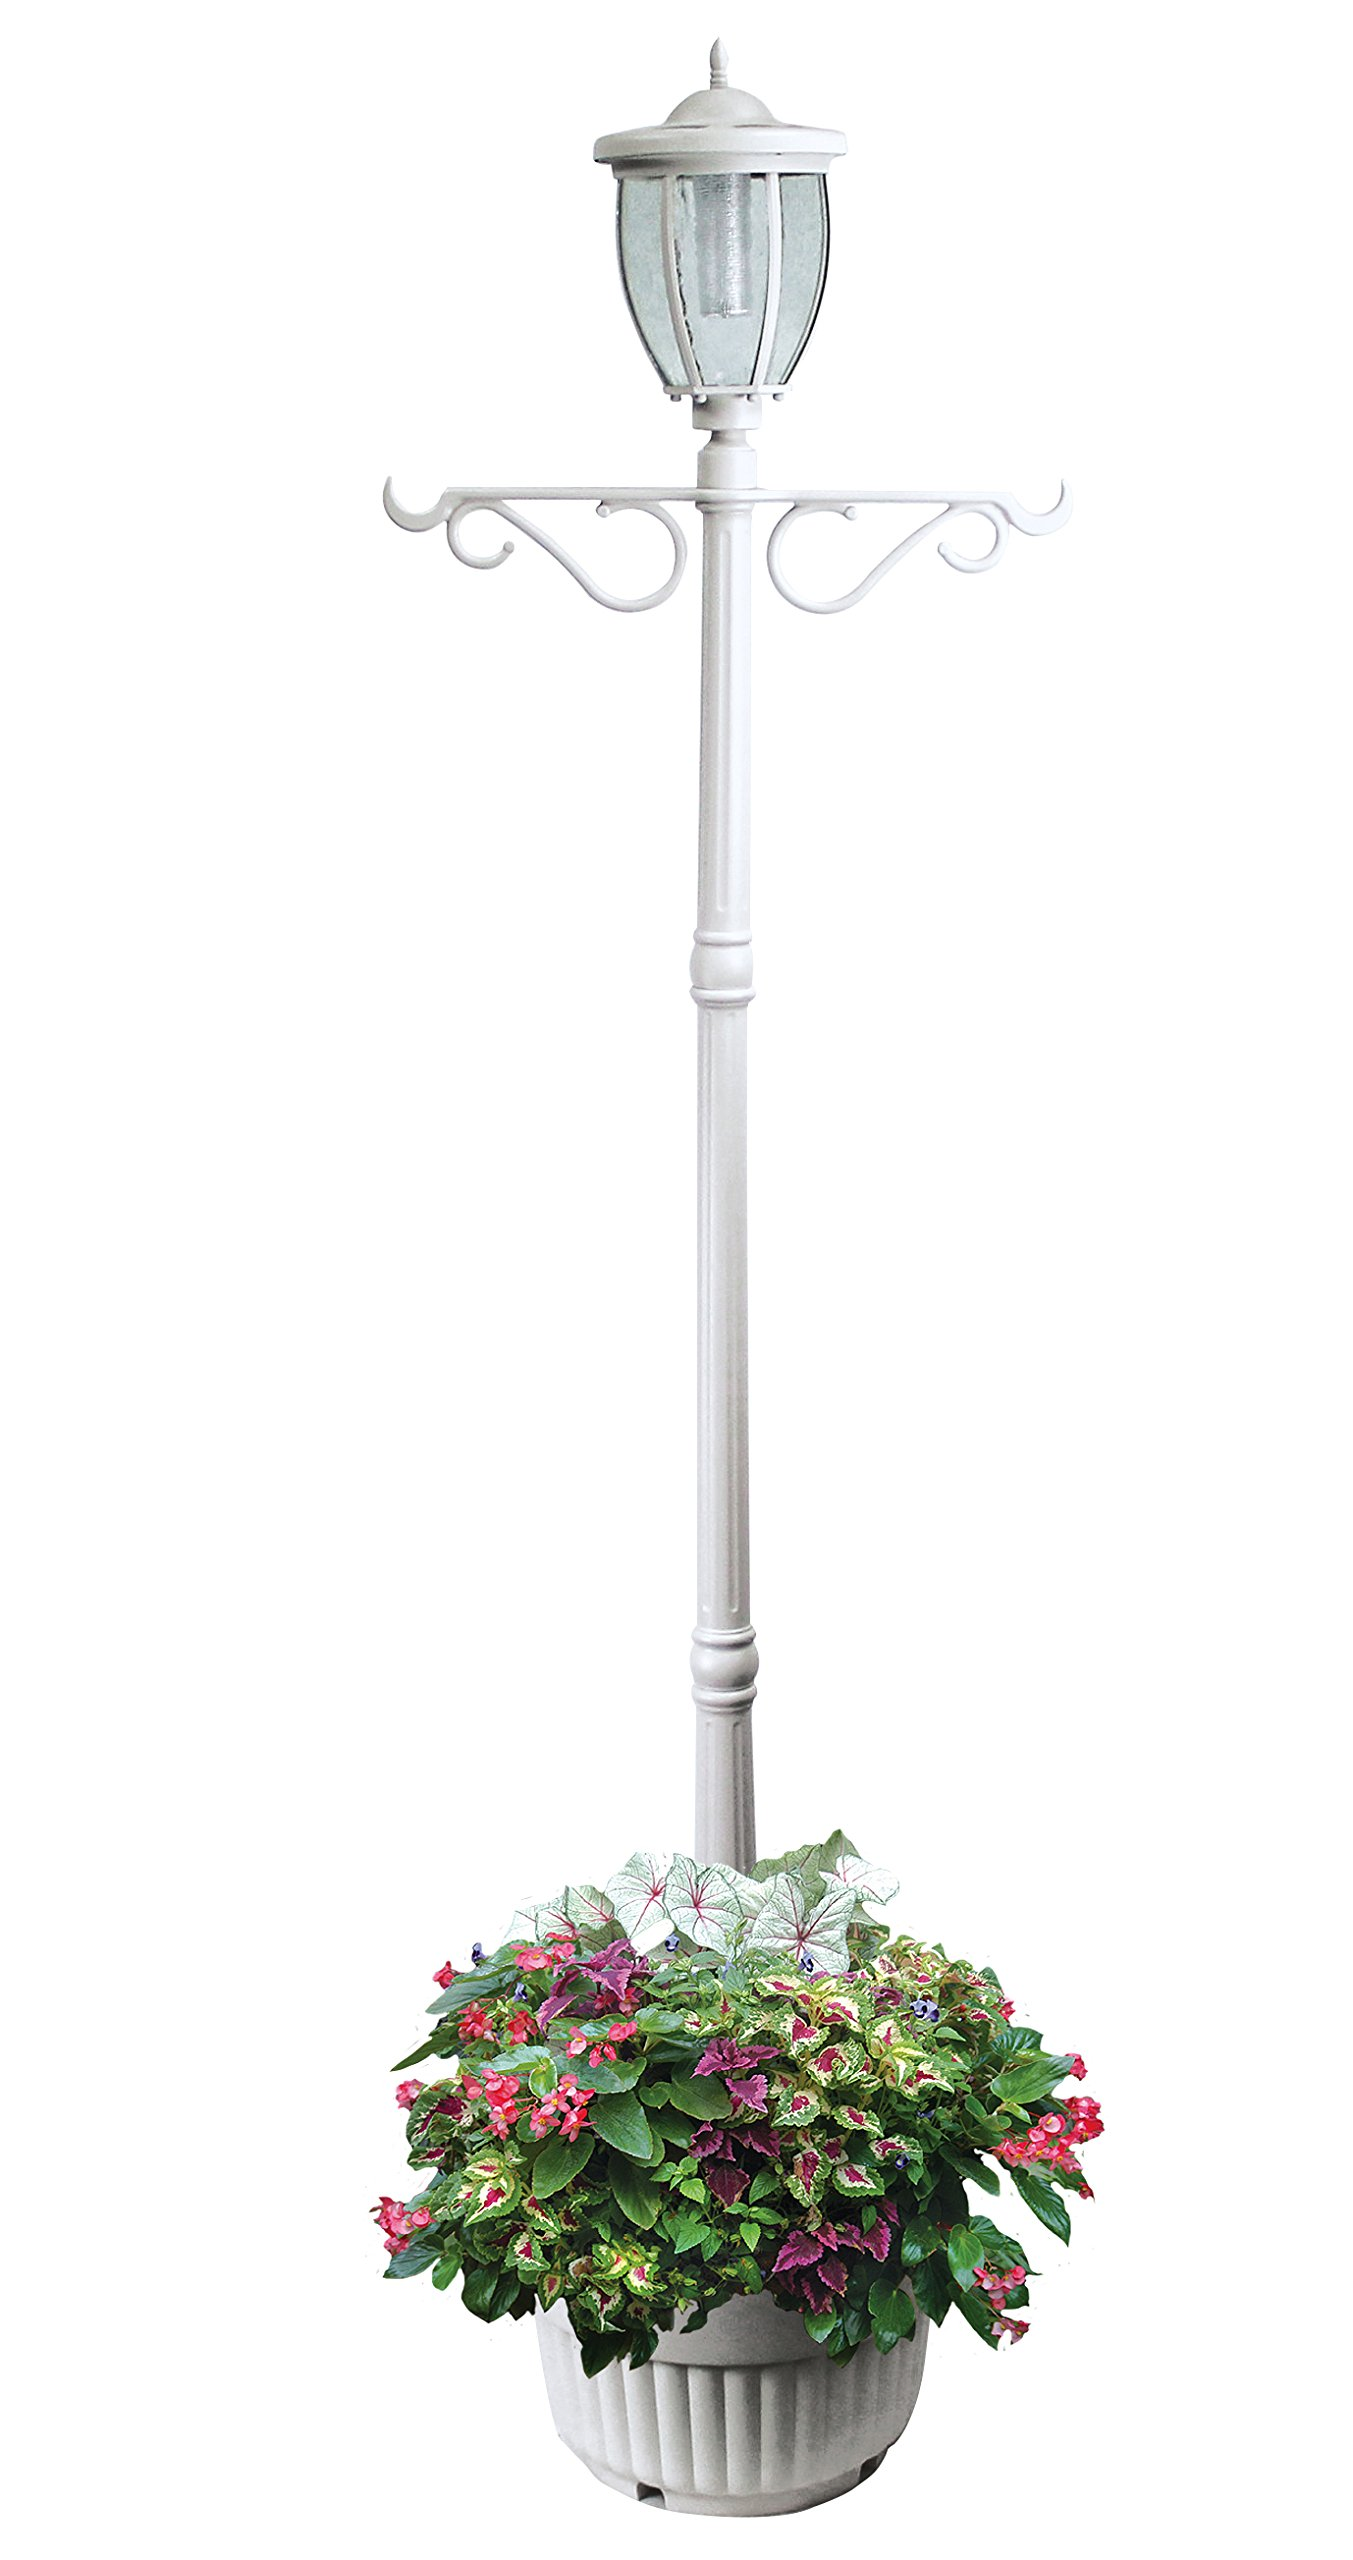 EdenBranch 312065 Sun-Ray Kenwick Solar Lamp Post and Planter with Hanger, Single Head, White by EdenBranch